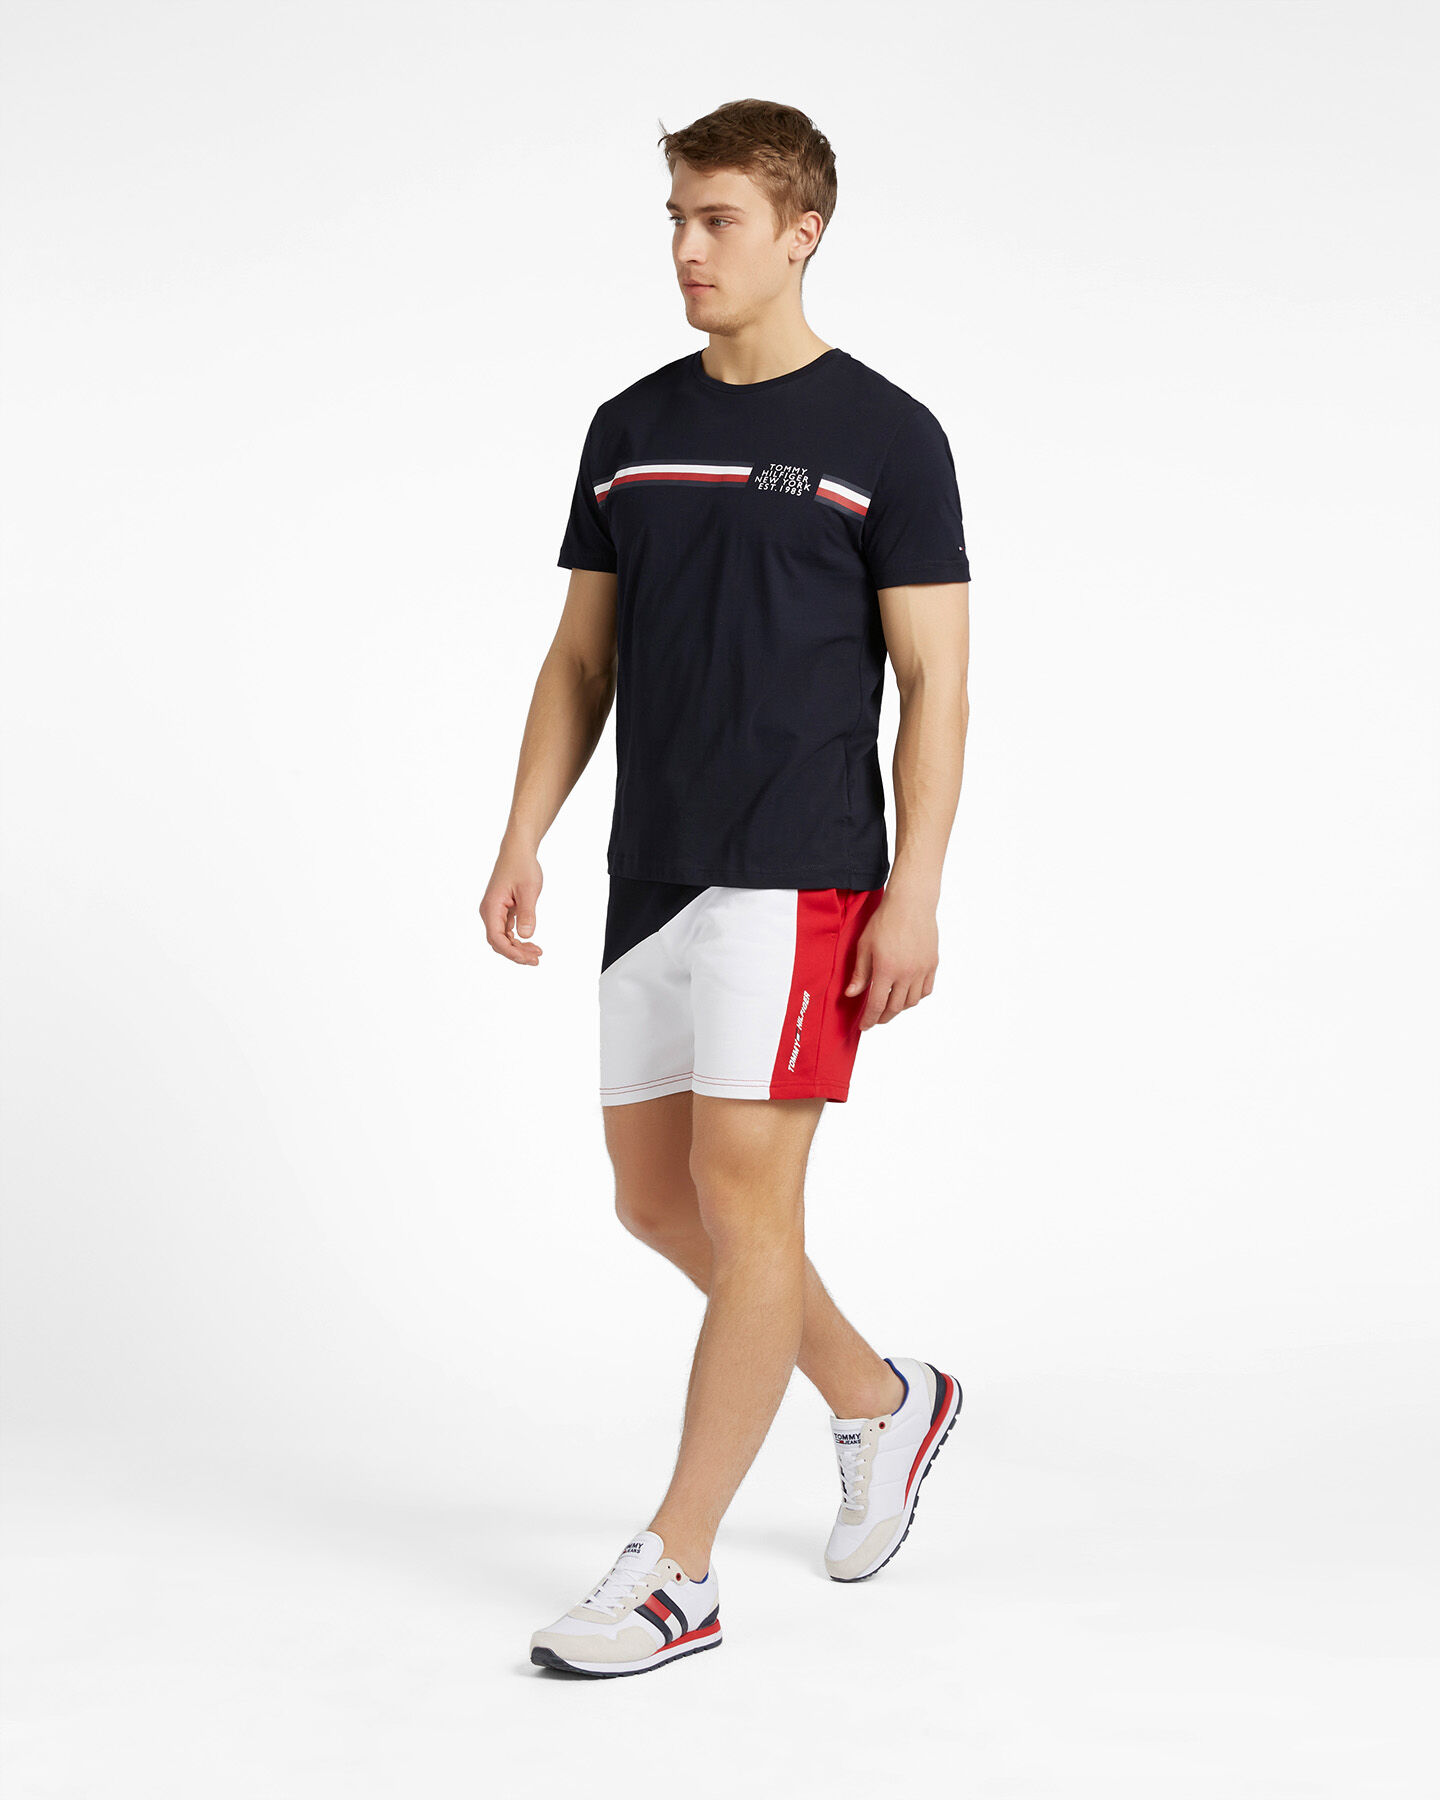 T-Shirt TOMMY HILFIGER CORP SPLIT M S4089501 scatto 3